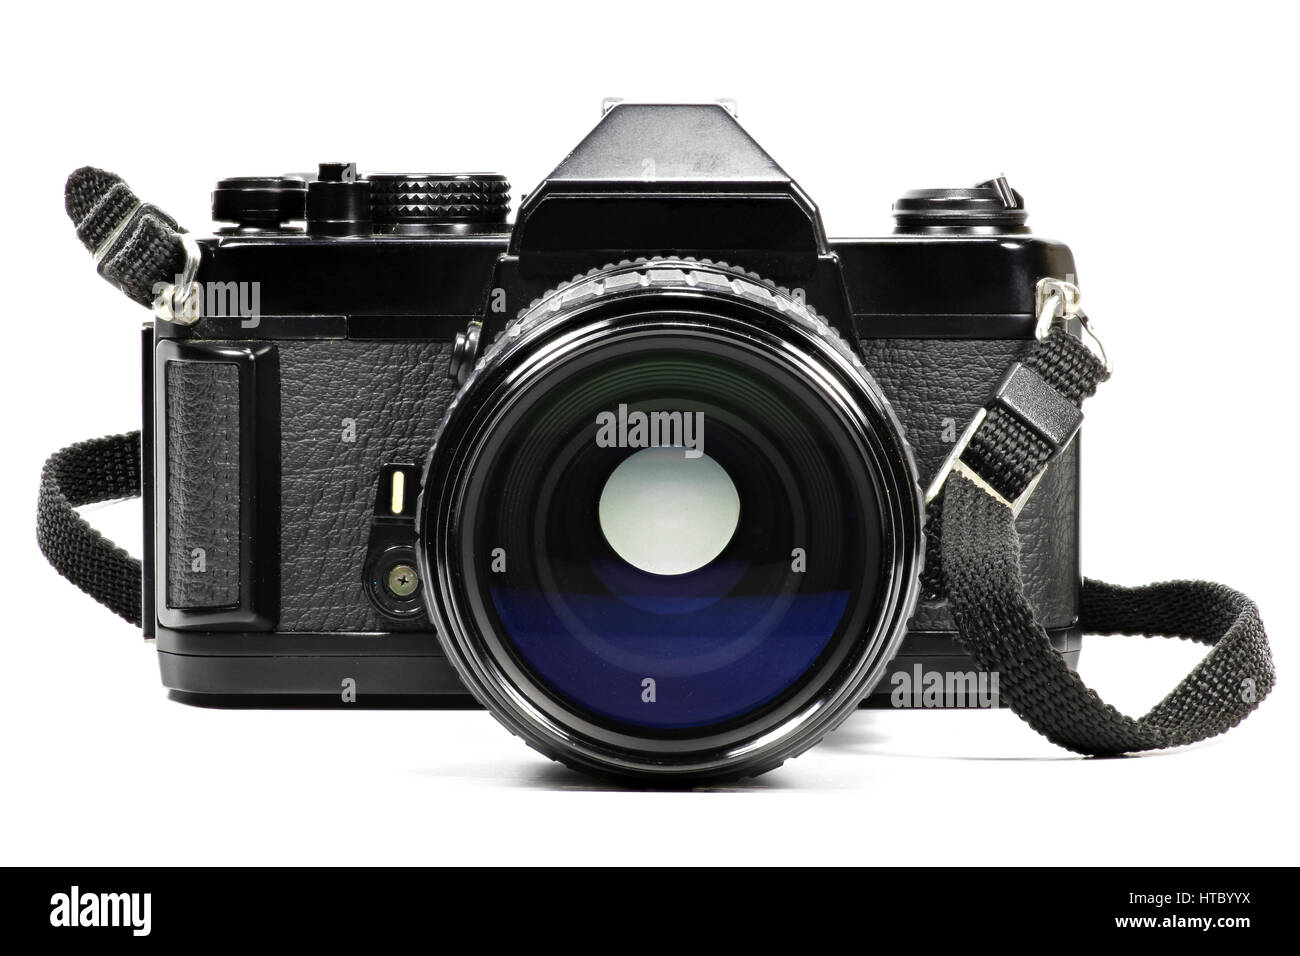 analogue single-lens reflex camera with telephoto lens isolated on white background - Stock Image